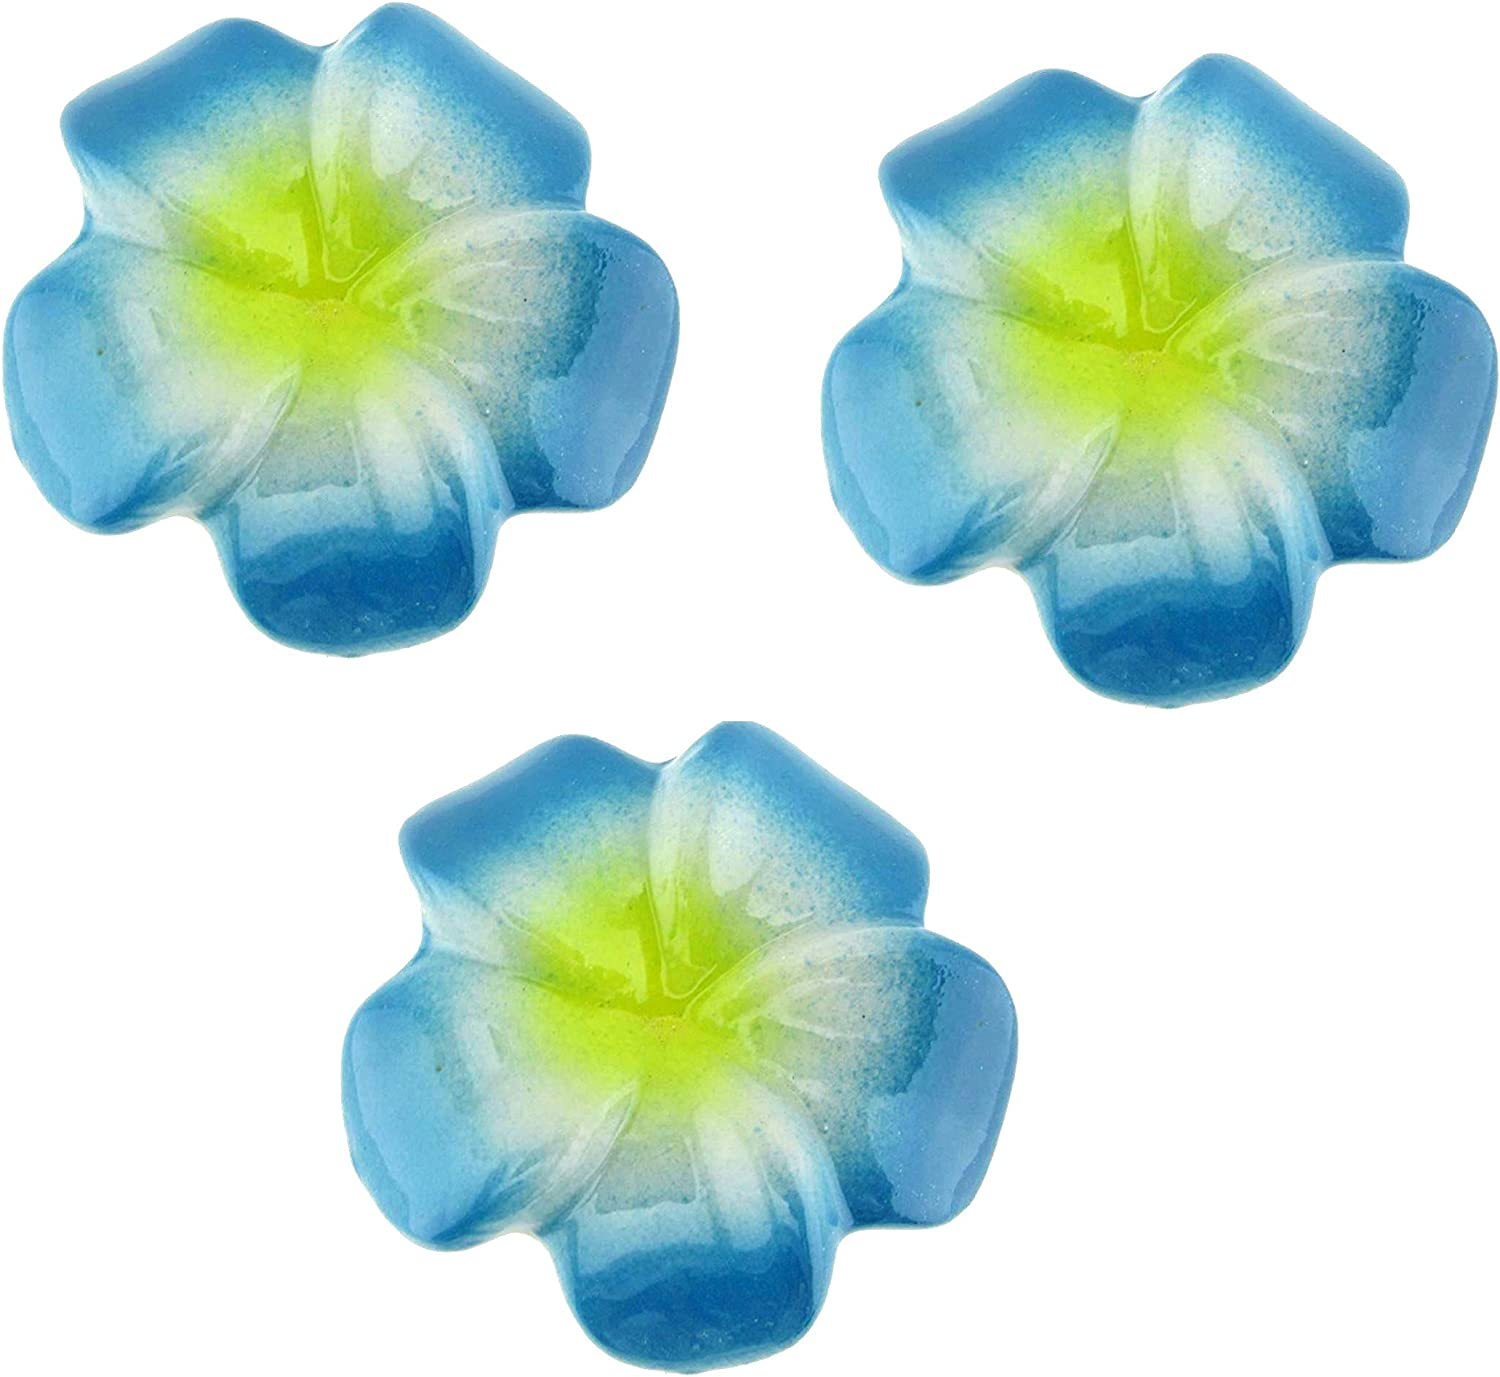 Floating Ceramic Flowers for Pond - Enchanted Garden Decoration, Water Fountain Outdoor Fairy Garden Accents - 3 Inch (Set of 3 Blue)